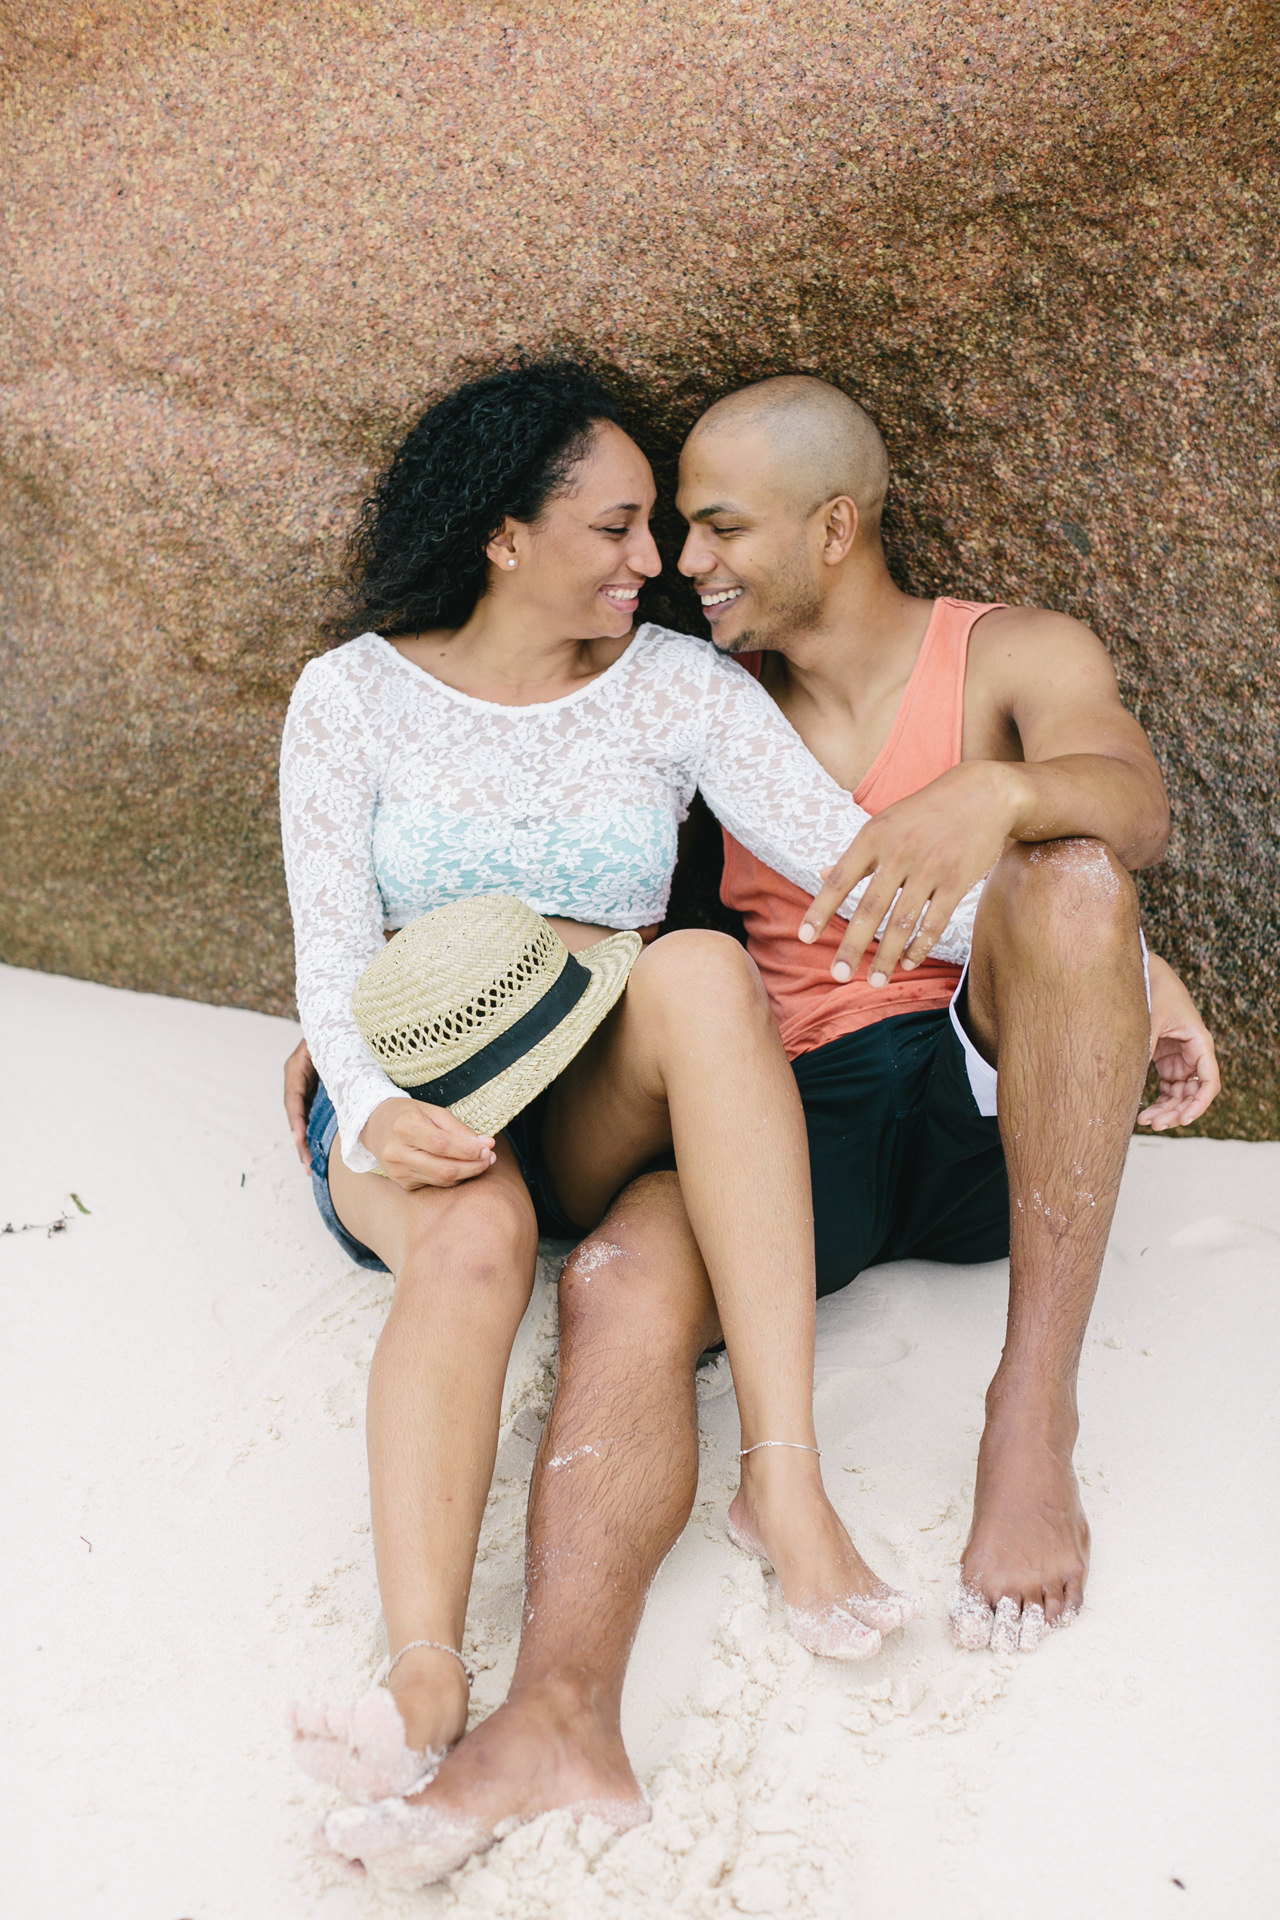 Seychelles_LaDigue_Couple_002.jpg